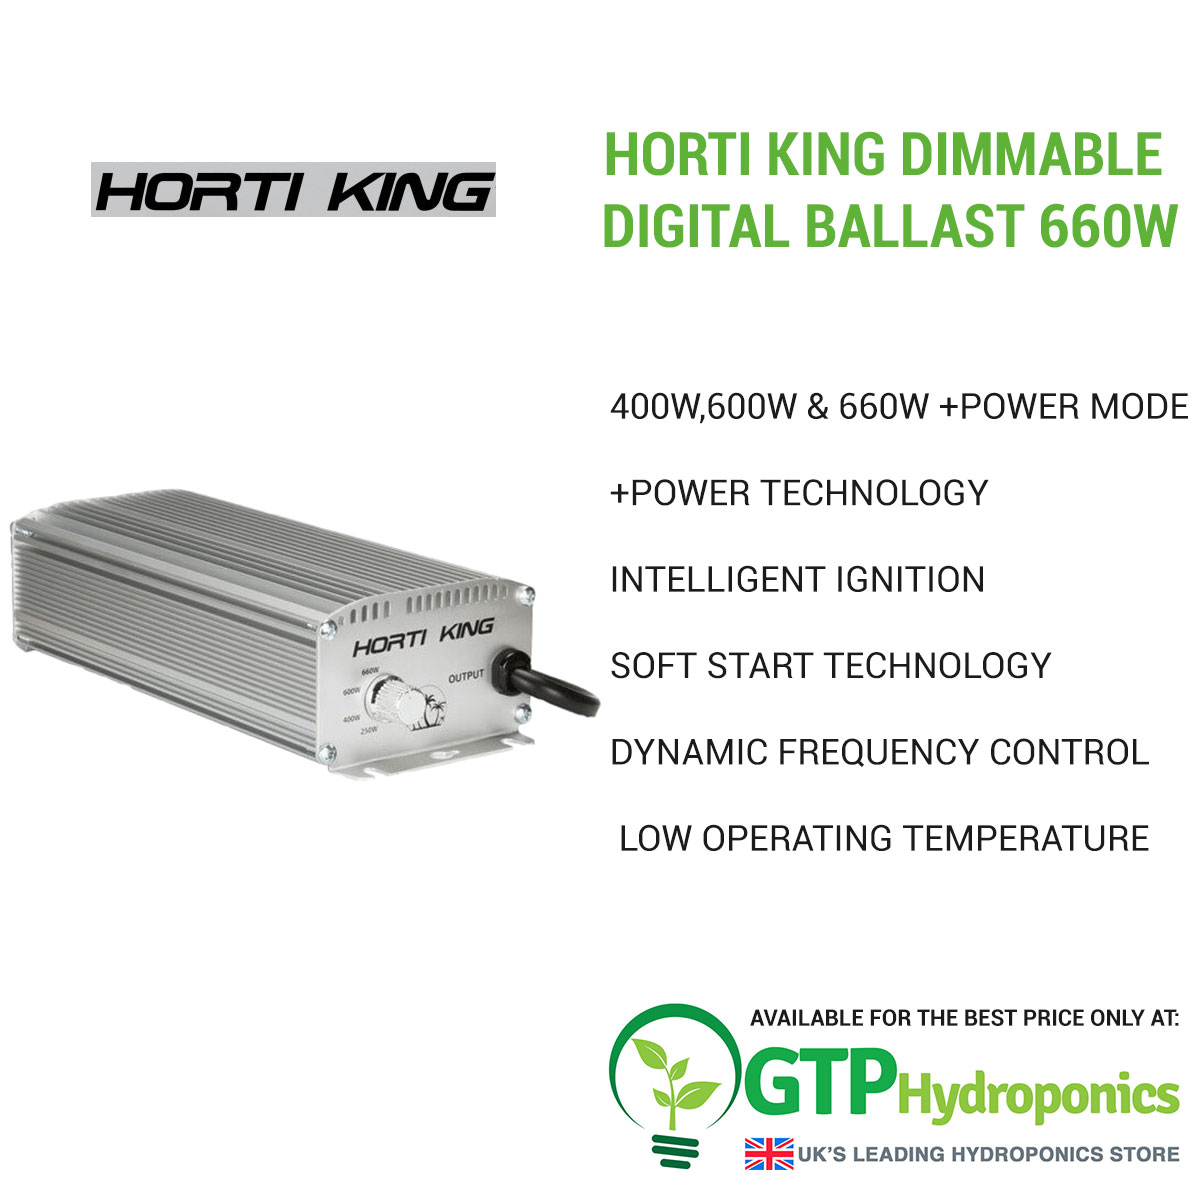 Horti King Dimmable Digital Ballast 660w overview